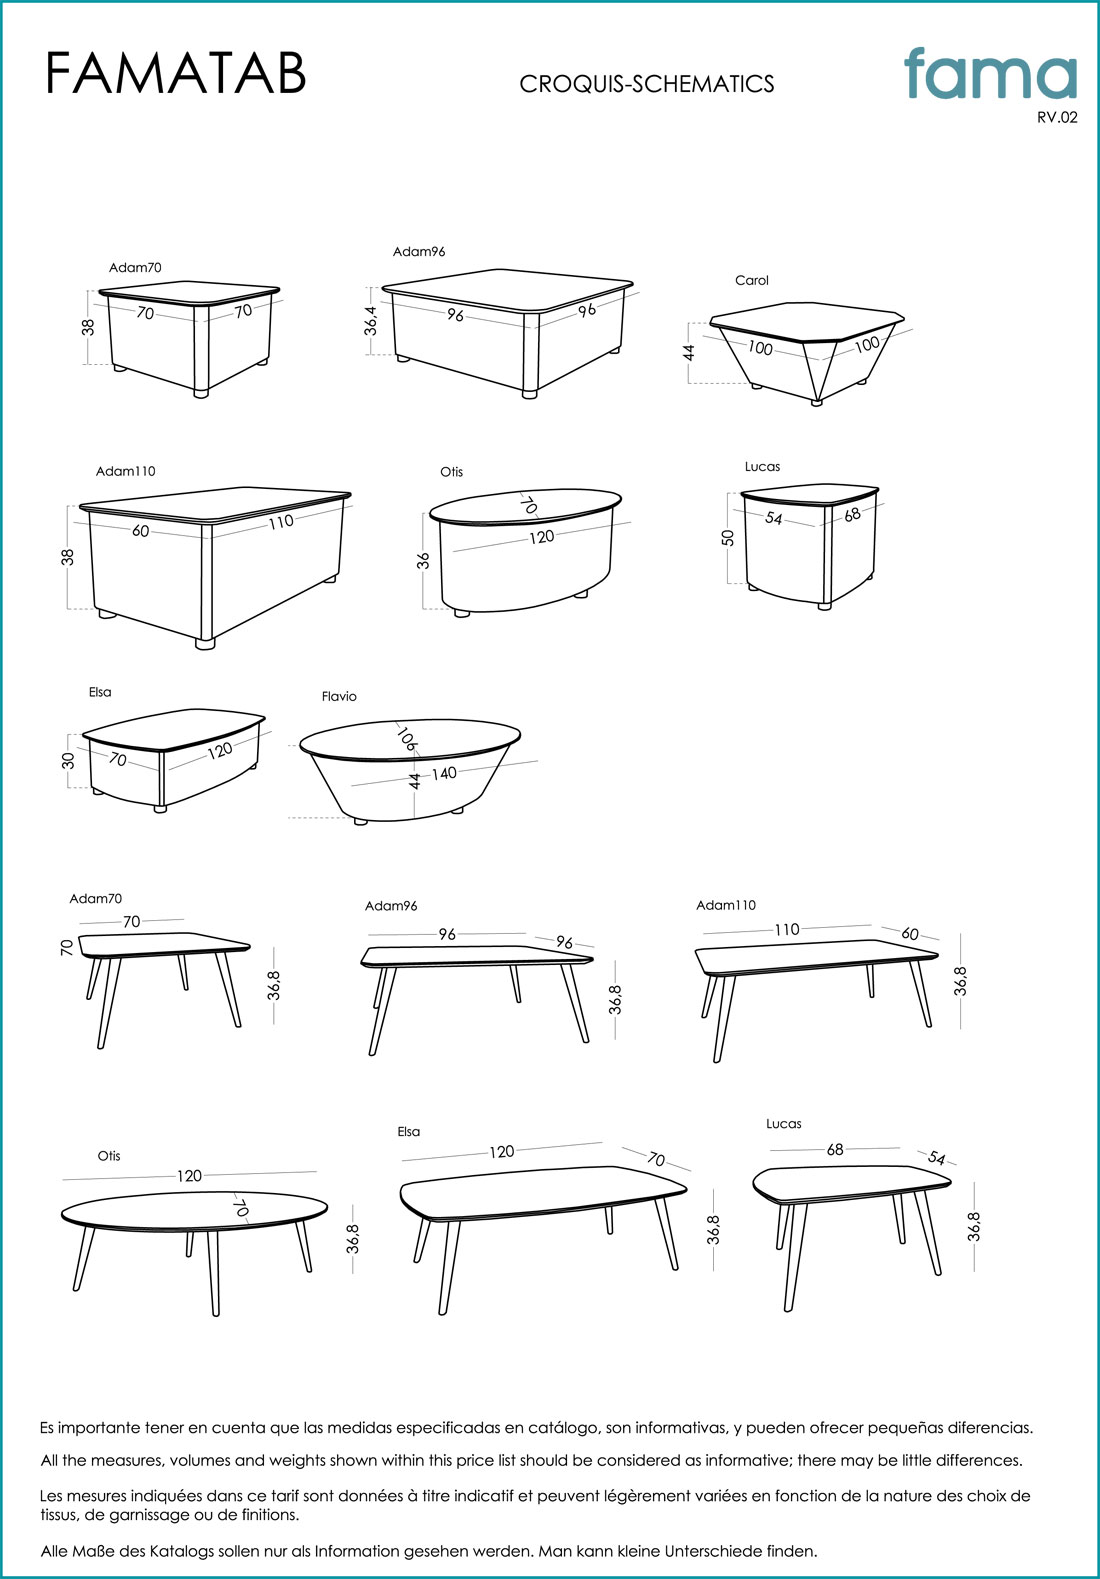 modern-pullout-table-otis-specification